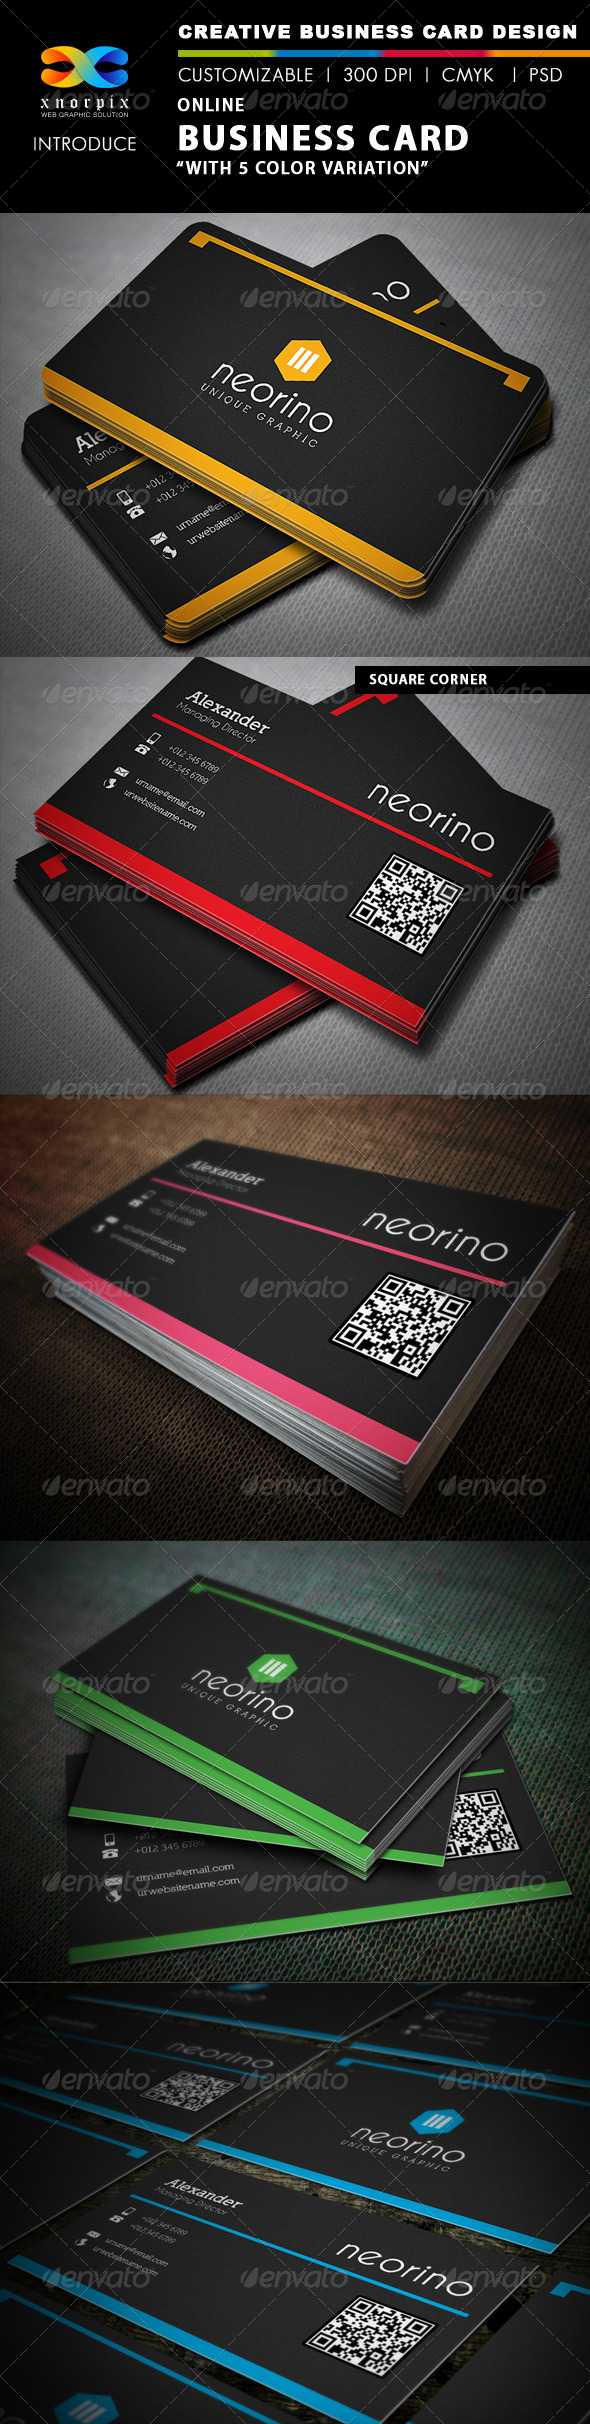 Online Business Card - Corporate Business Cards